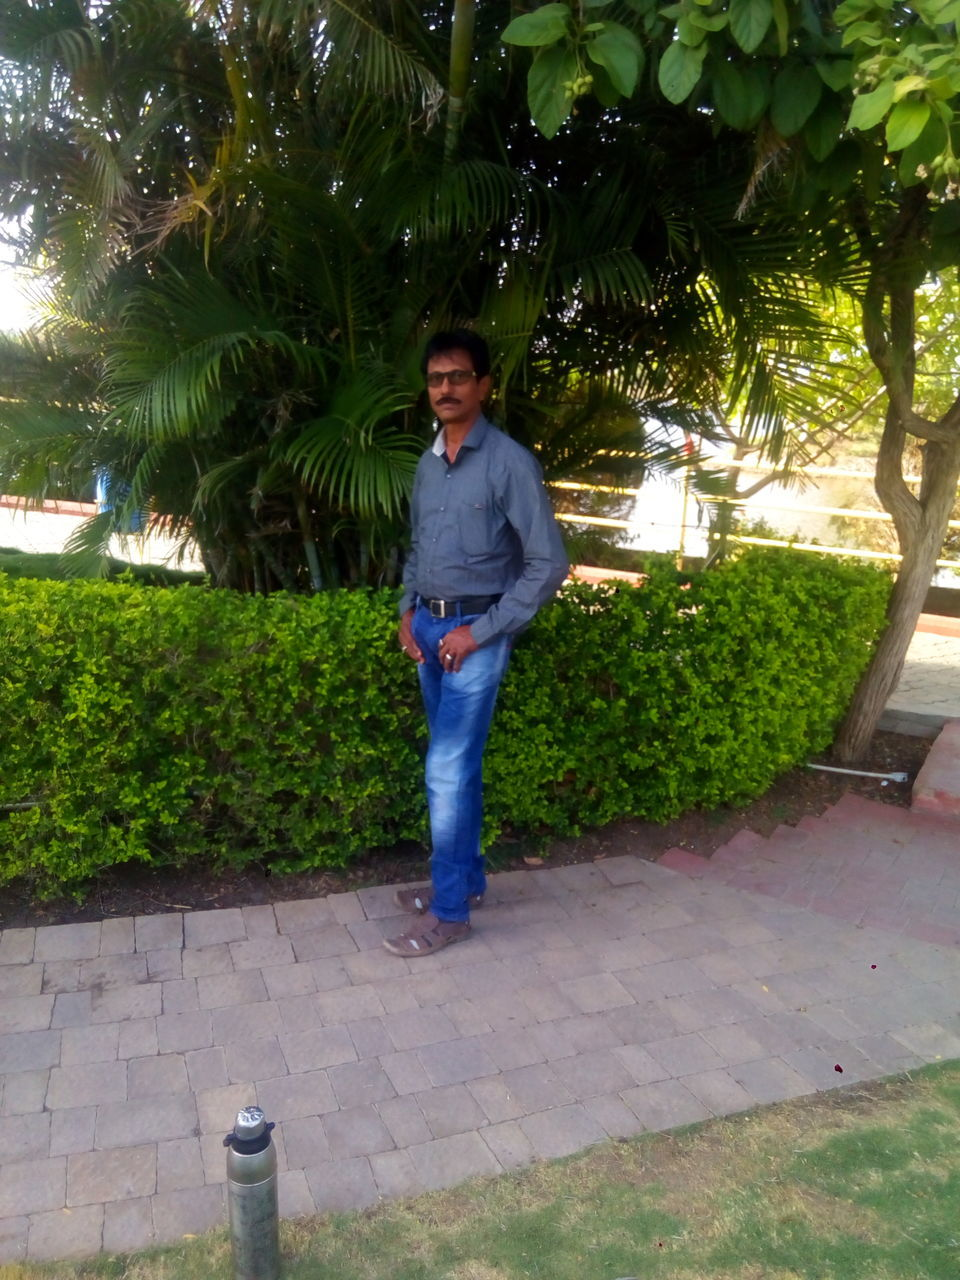 looking at camera, portrait, standing, one person, tree, casual clothing, real people, outdoors, front view, growth, full length, hands in pockets, smiling, day, plant, nature, young adult, people, adult